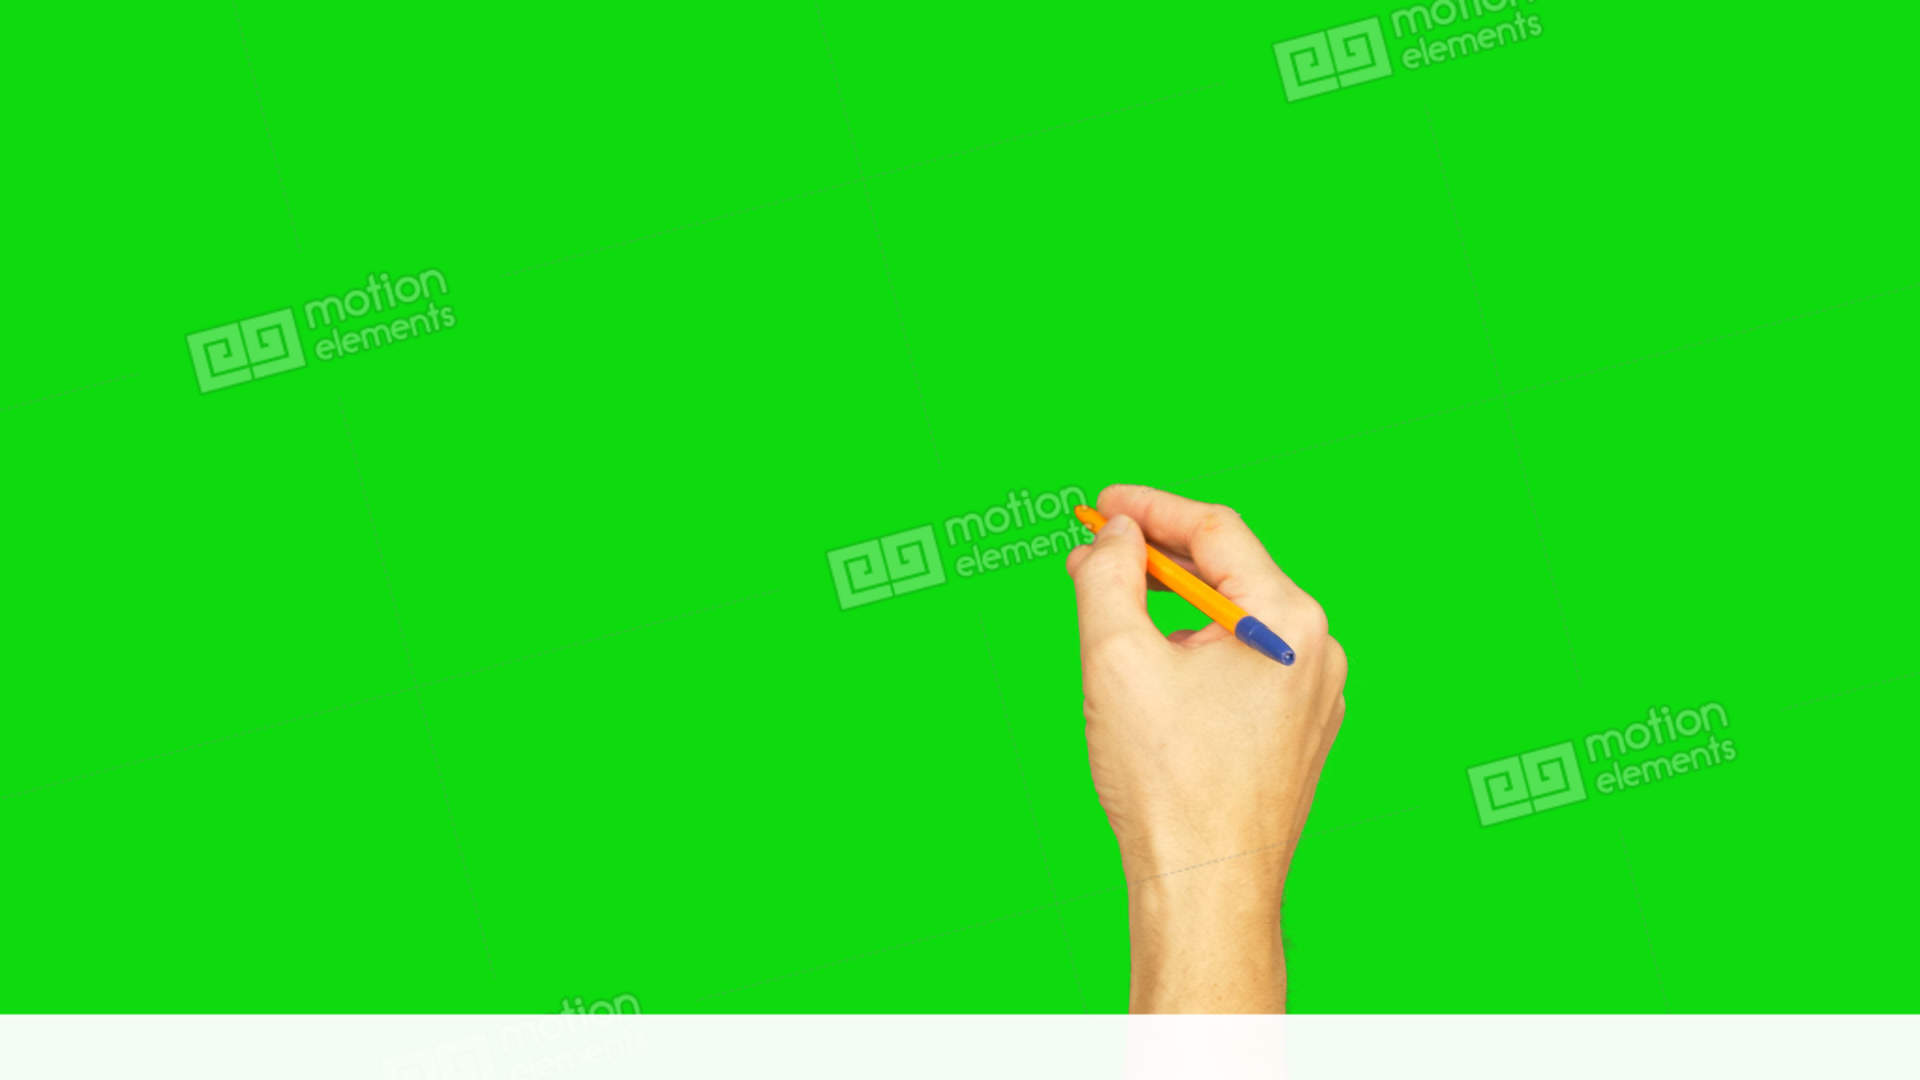 how to add background to a green screen video